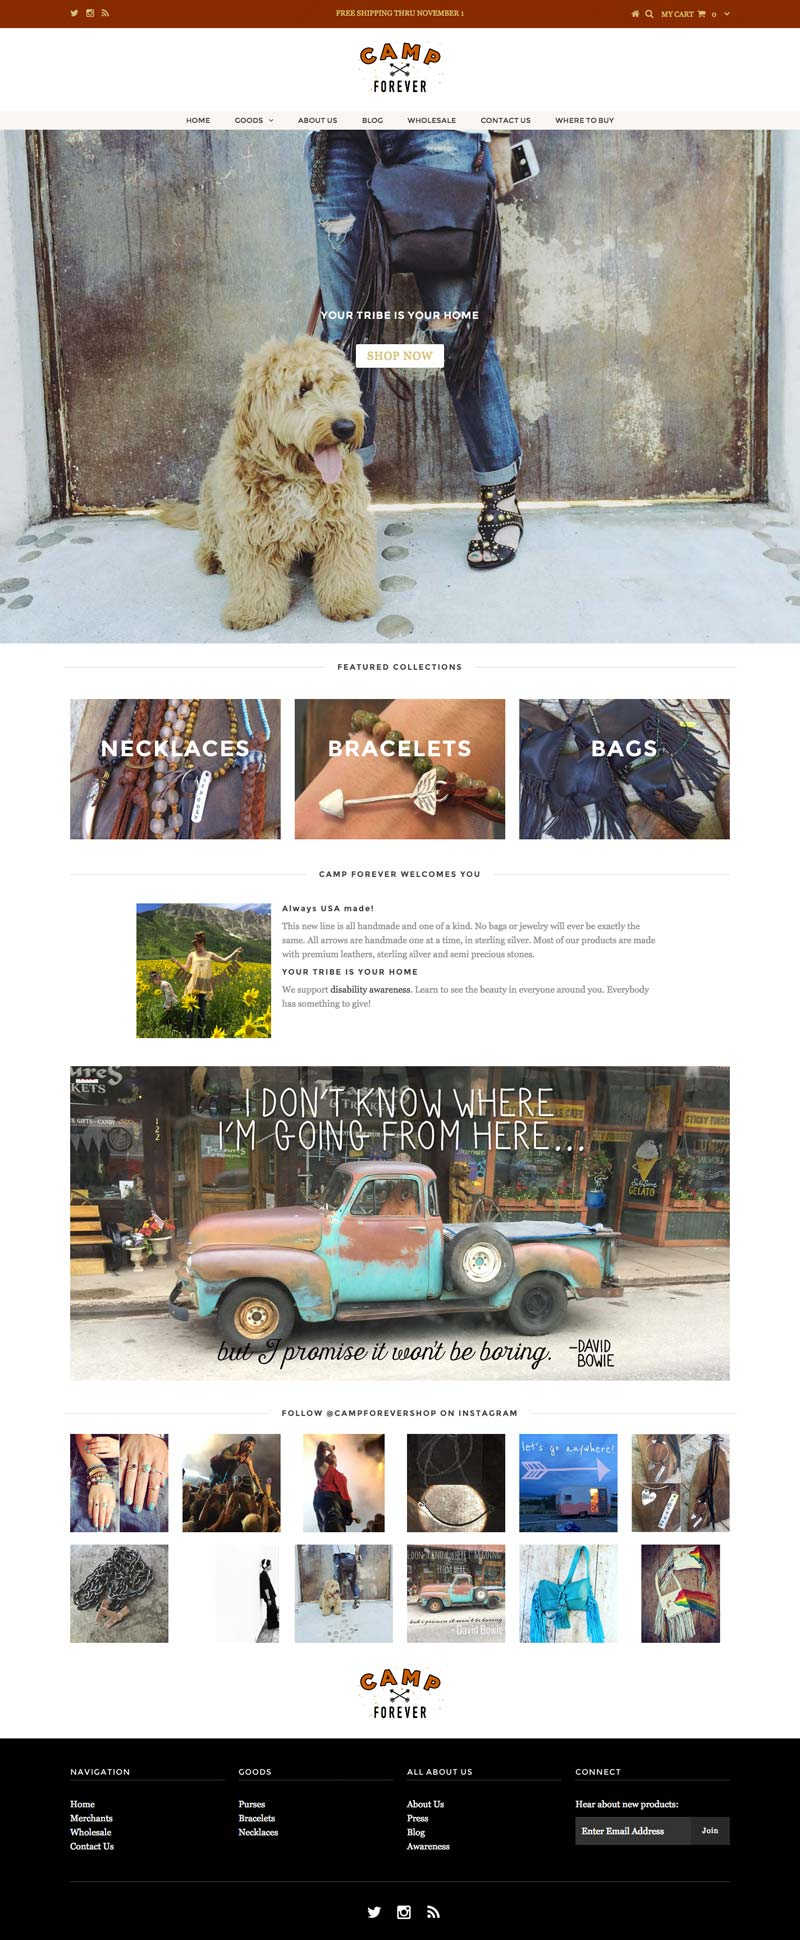 Shopify website design by Penina S. Finger